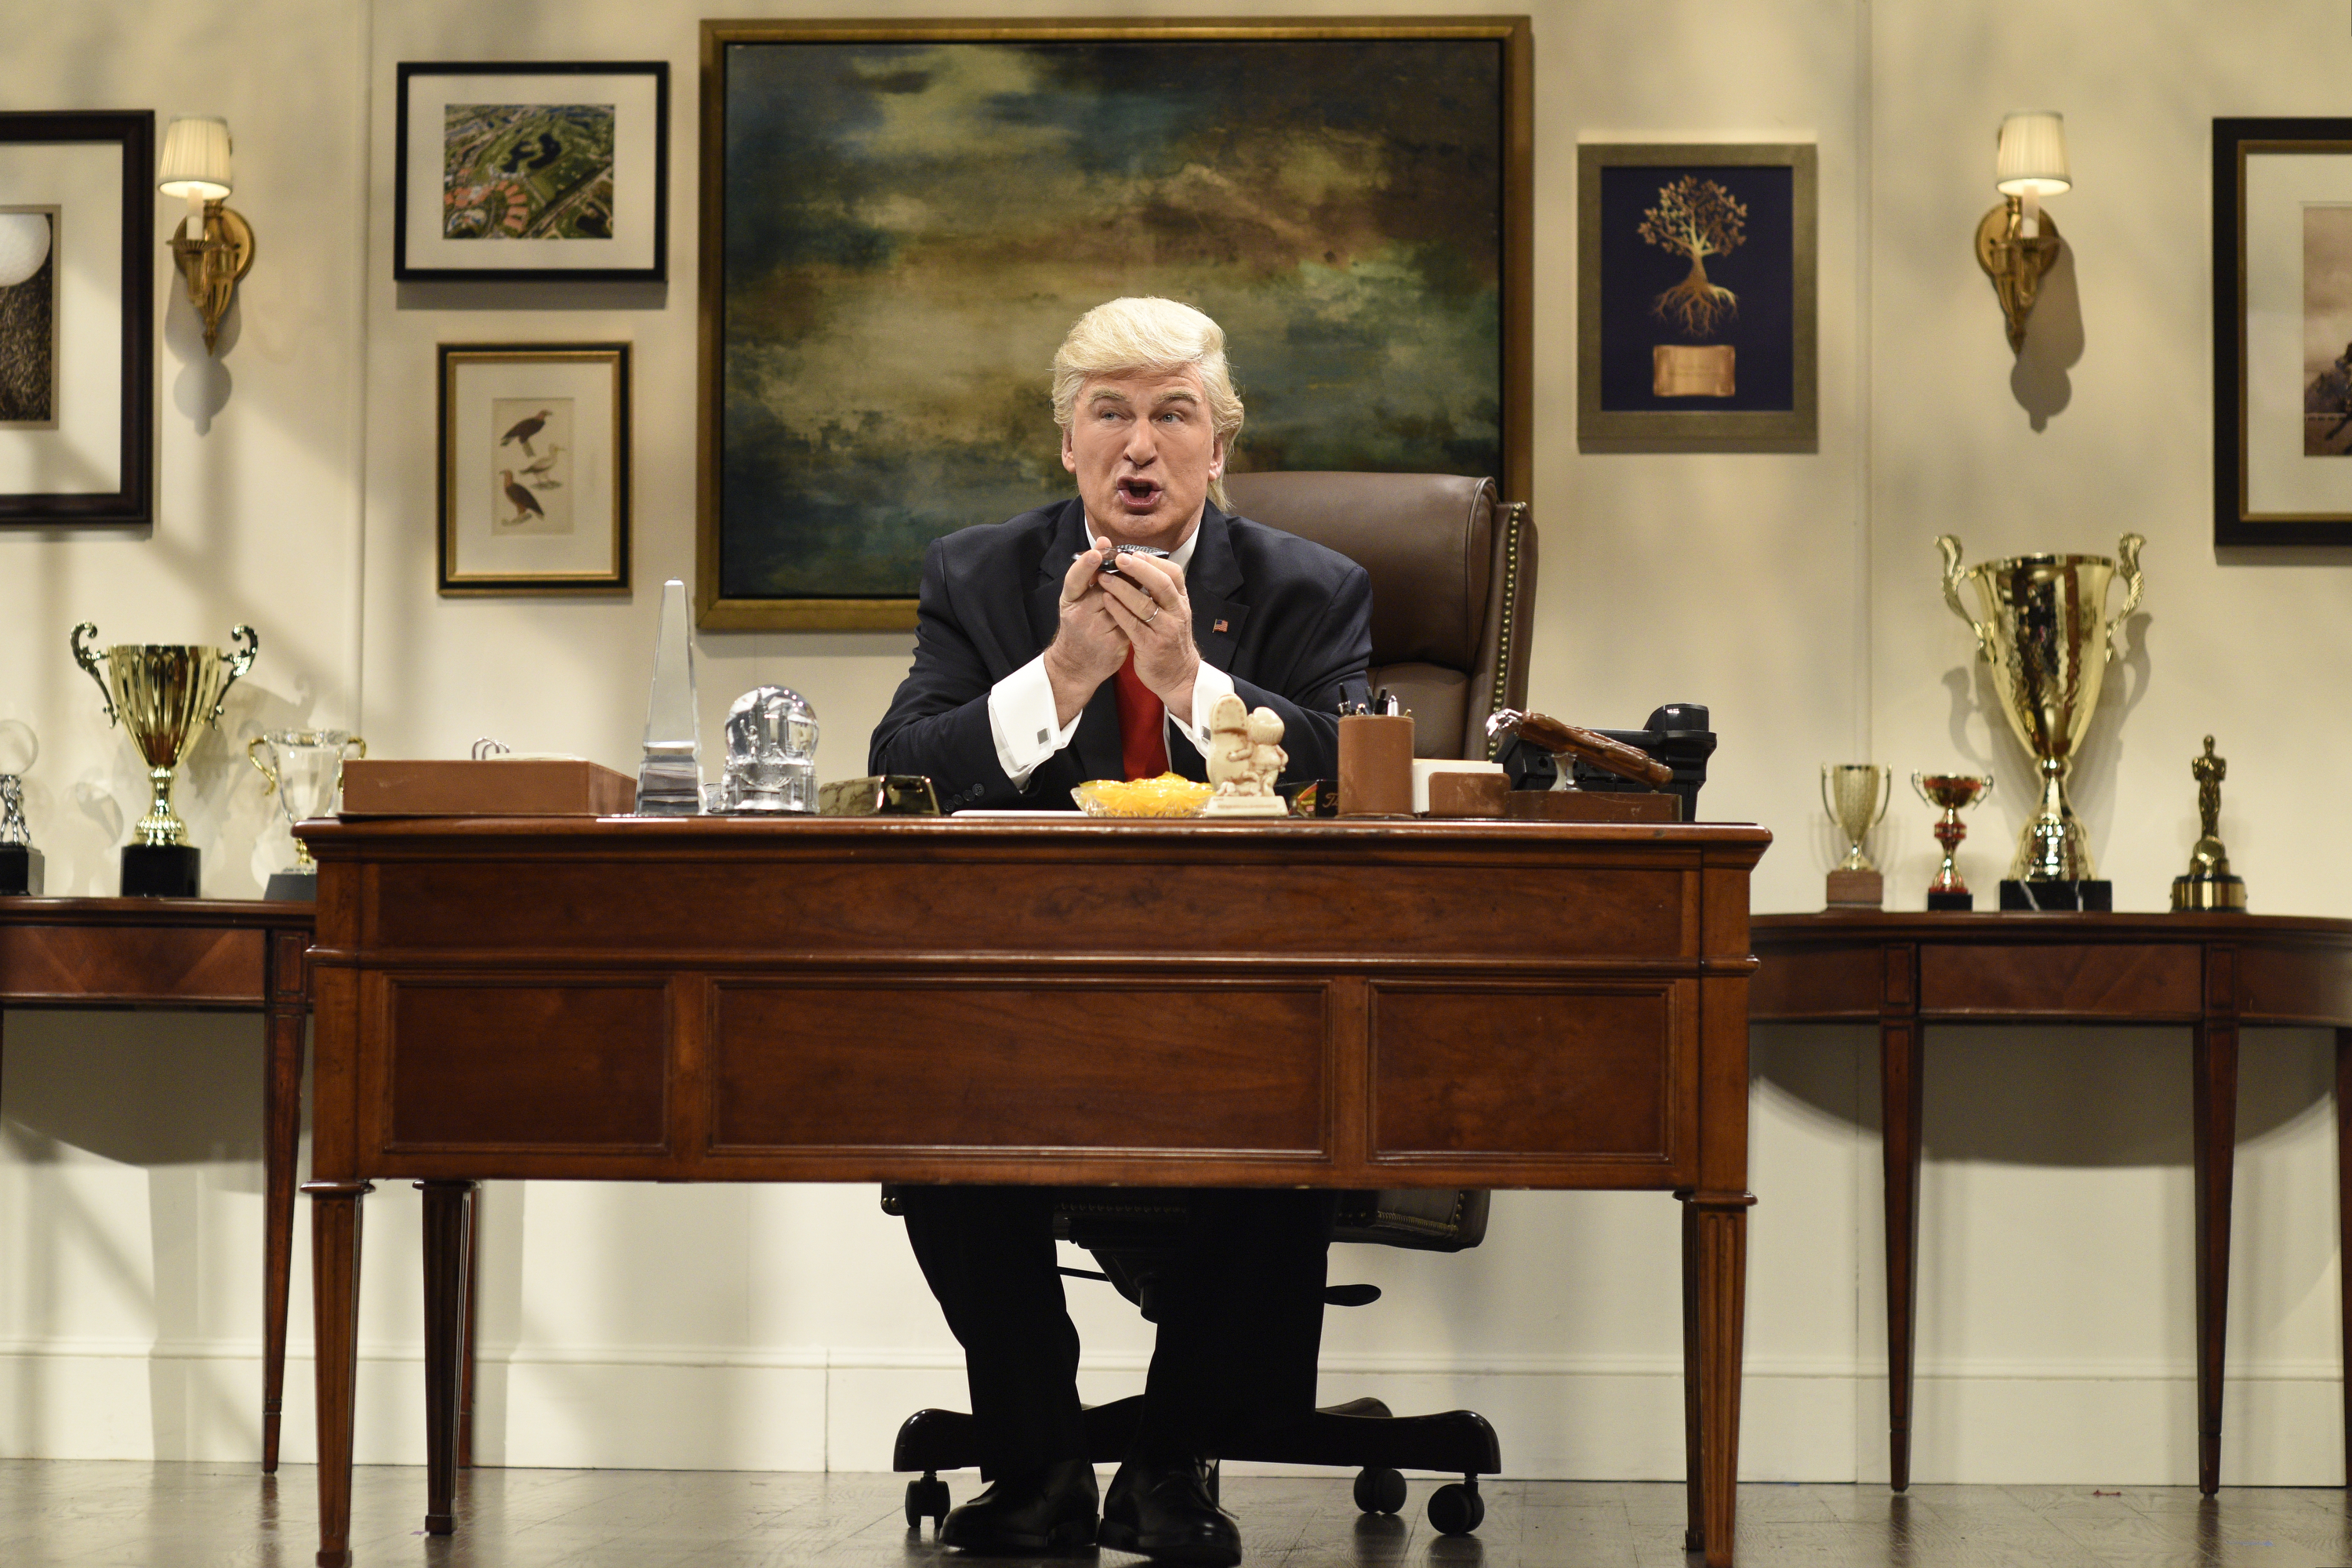 Alec Baldwin plays  Donald Trump during the Saturday Night Live cold open sketch in New York City, November 19, 2016